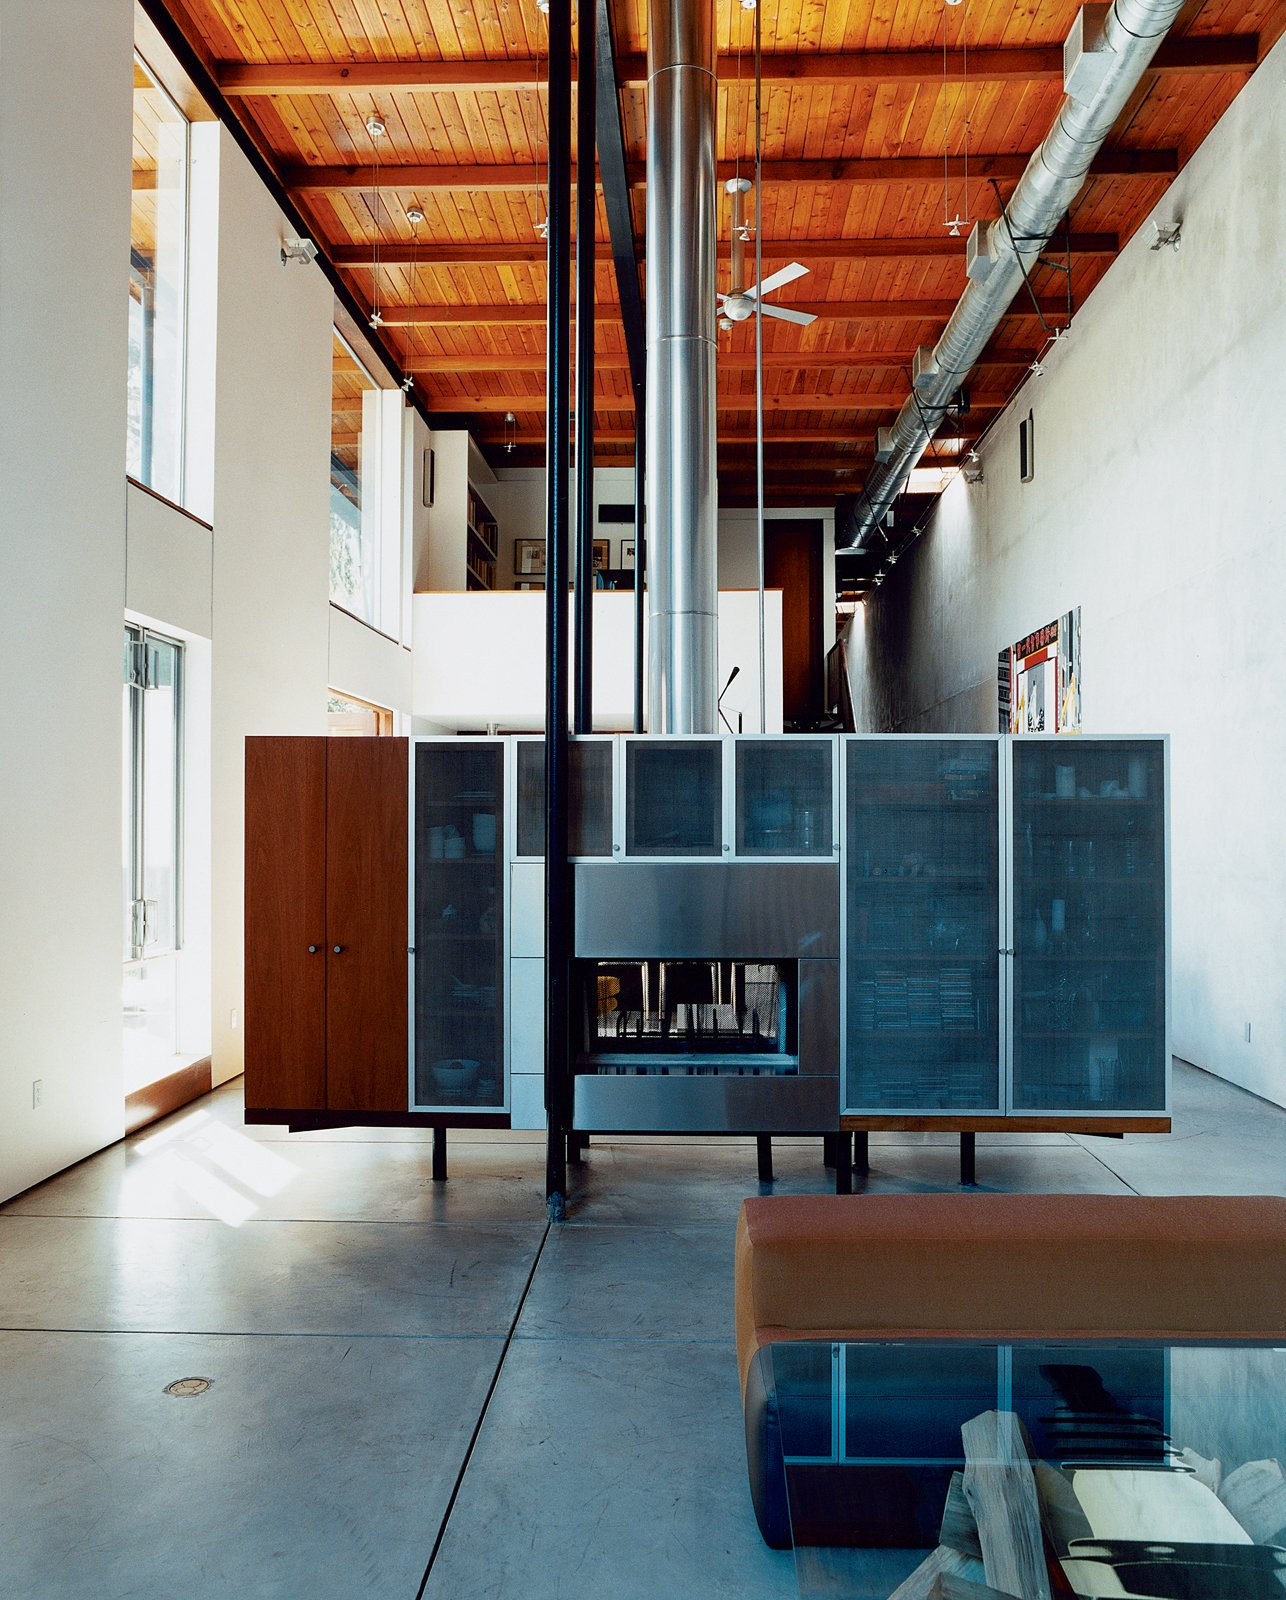 David Baker and cabinetmaker Thomas Jameson designed the freestanding fireplace / media console, which effectively divides the more formal living room from the dining and gathering space while concealing cords and other clutter.  97+ Modern Fireplace Ideas from The New Suburbanism